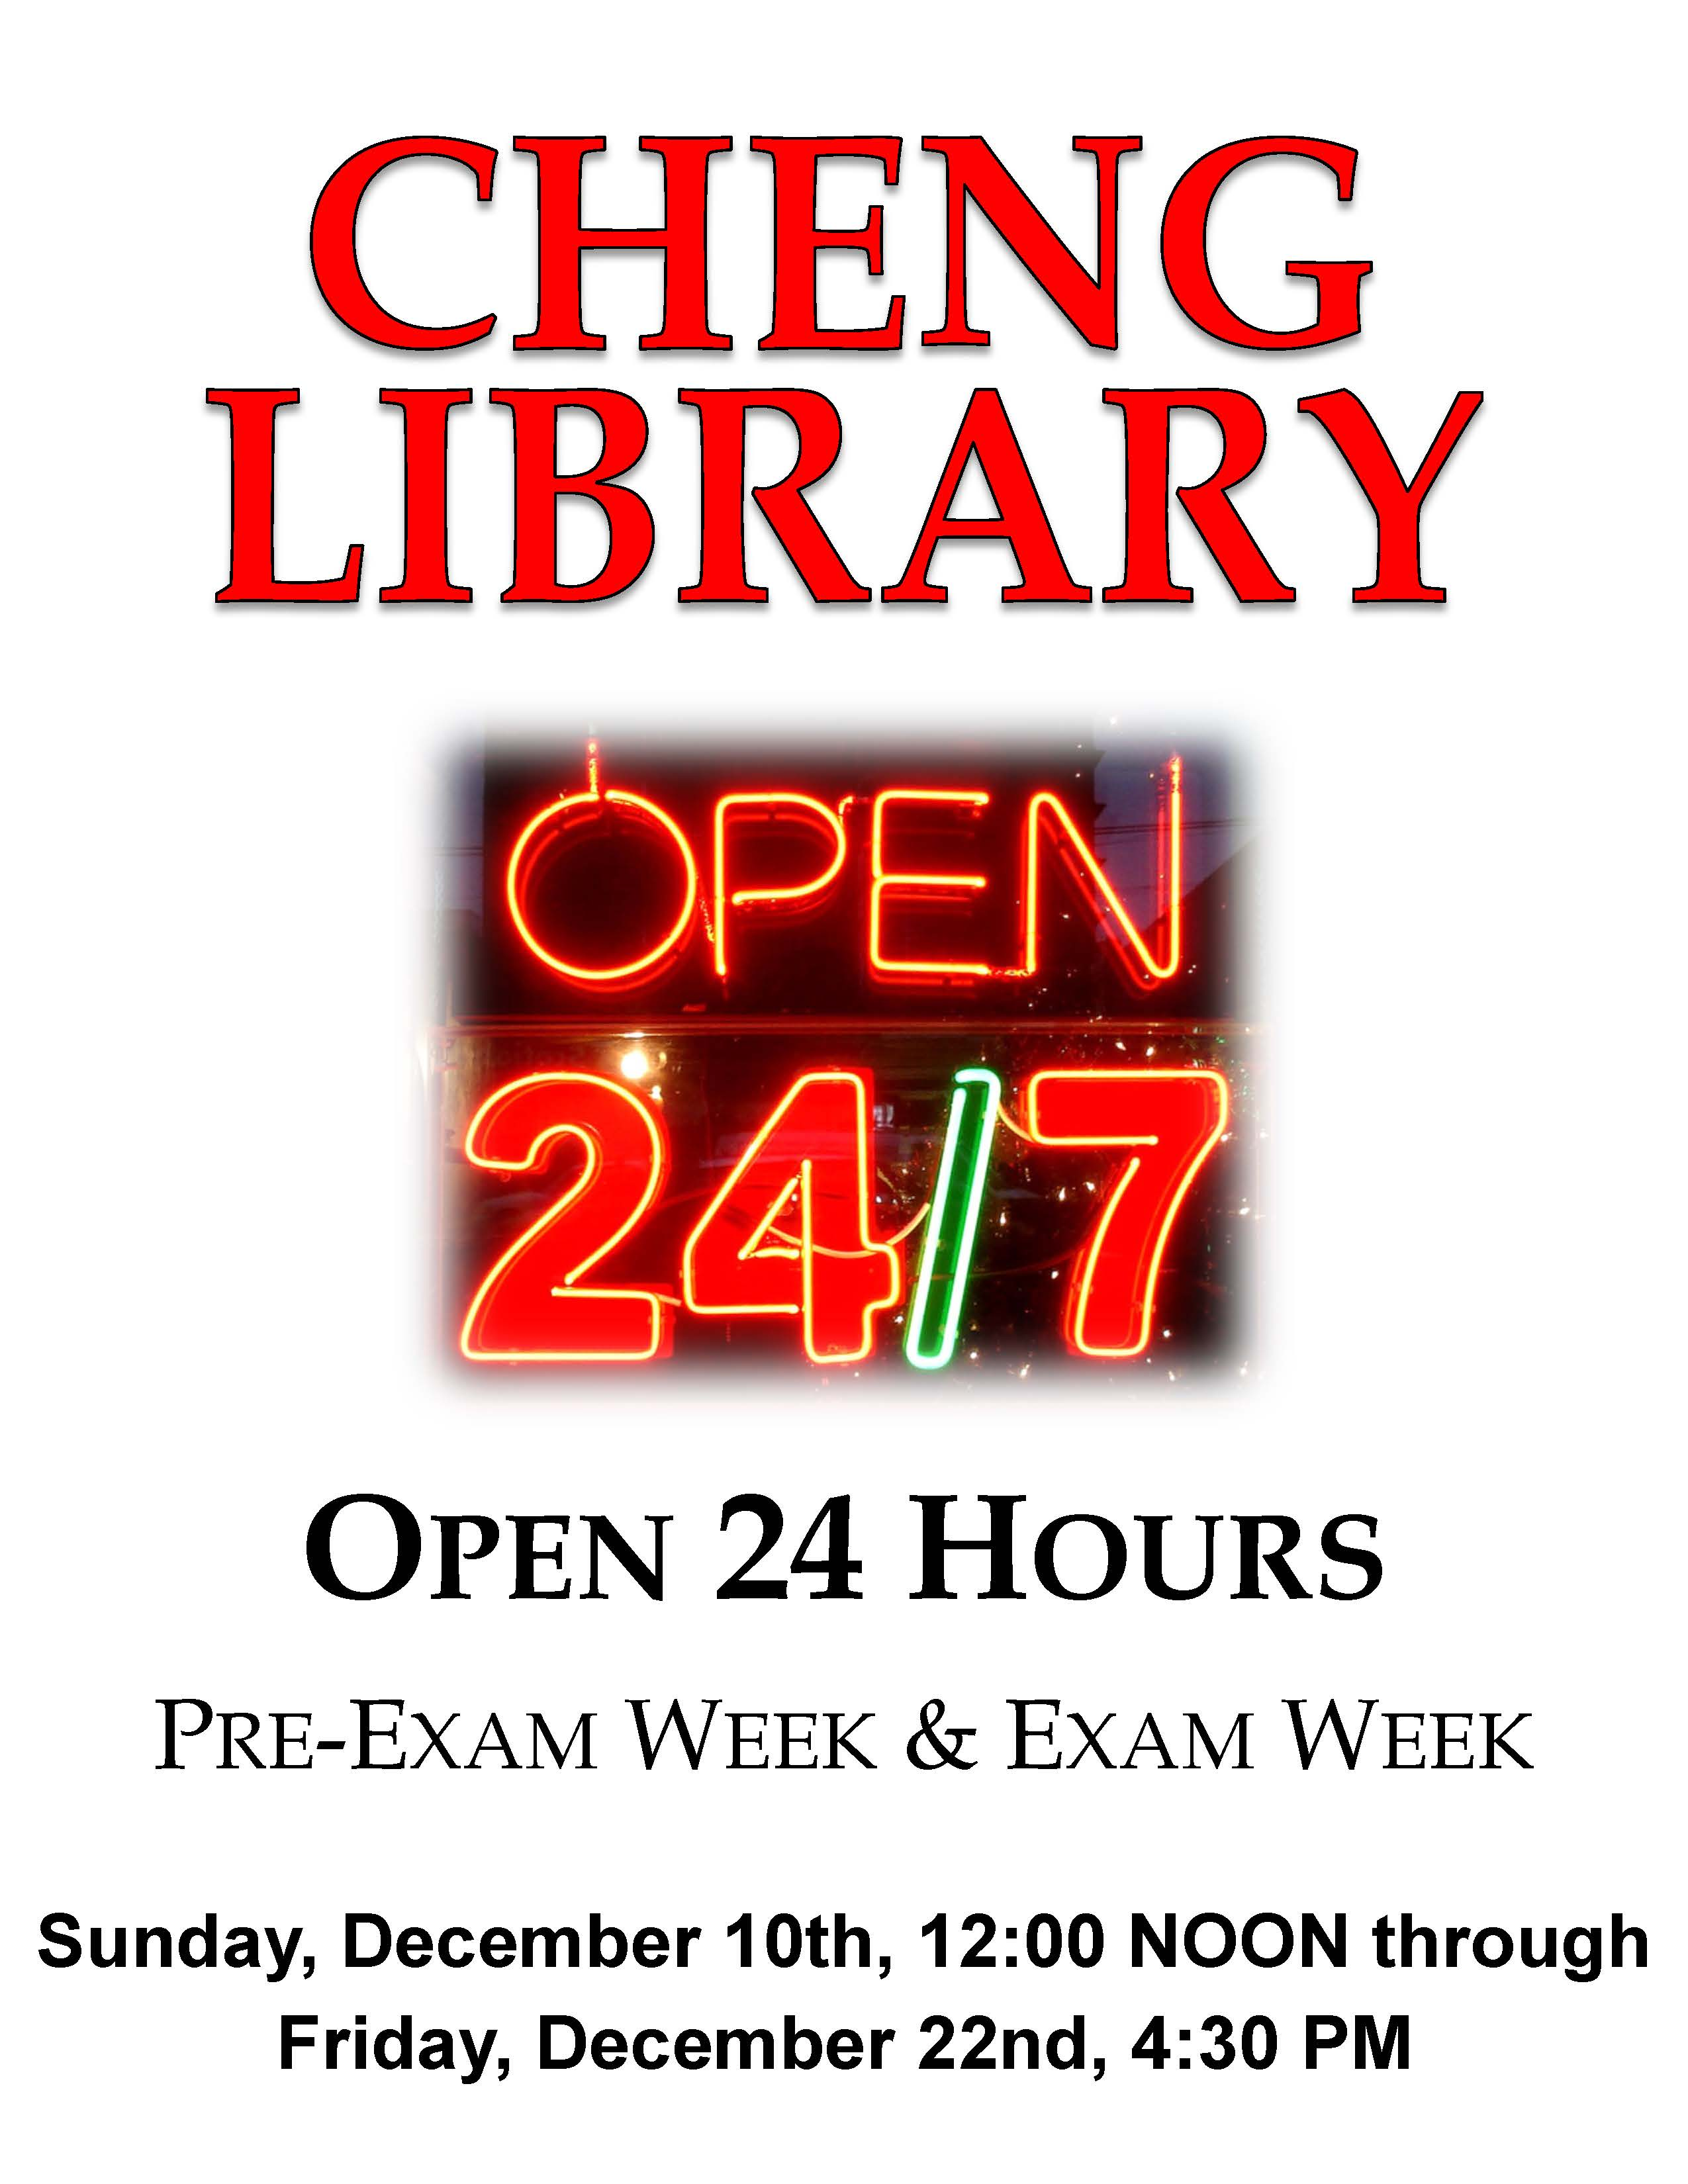 24 7 Cheng Library Fall 2017.jpg